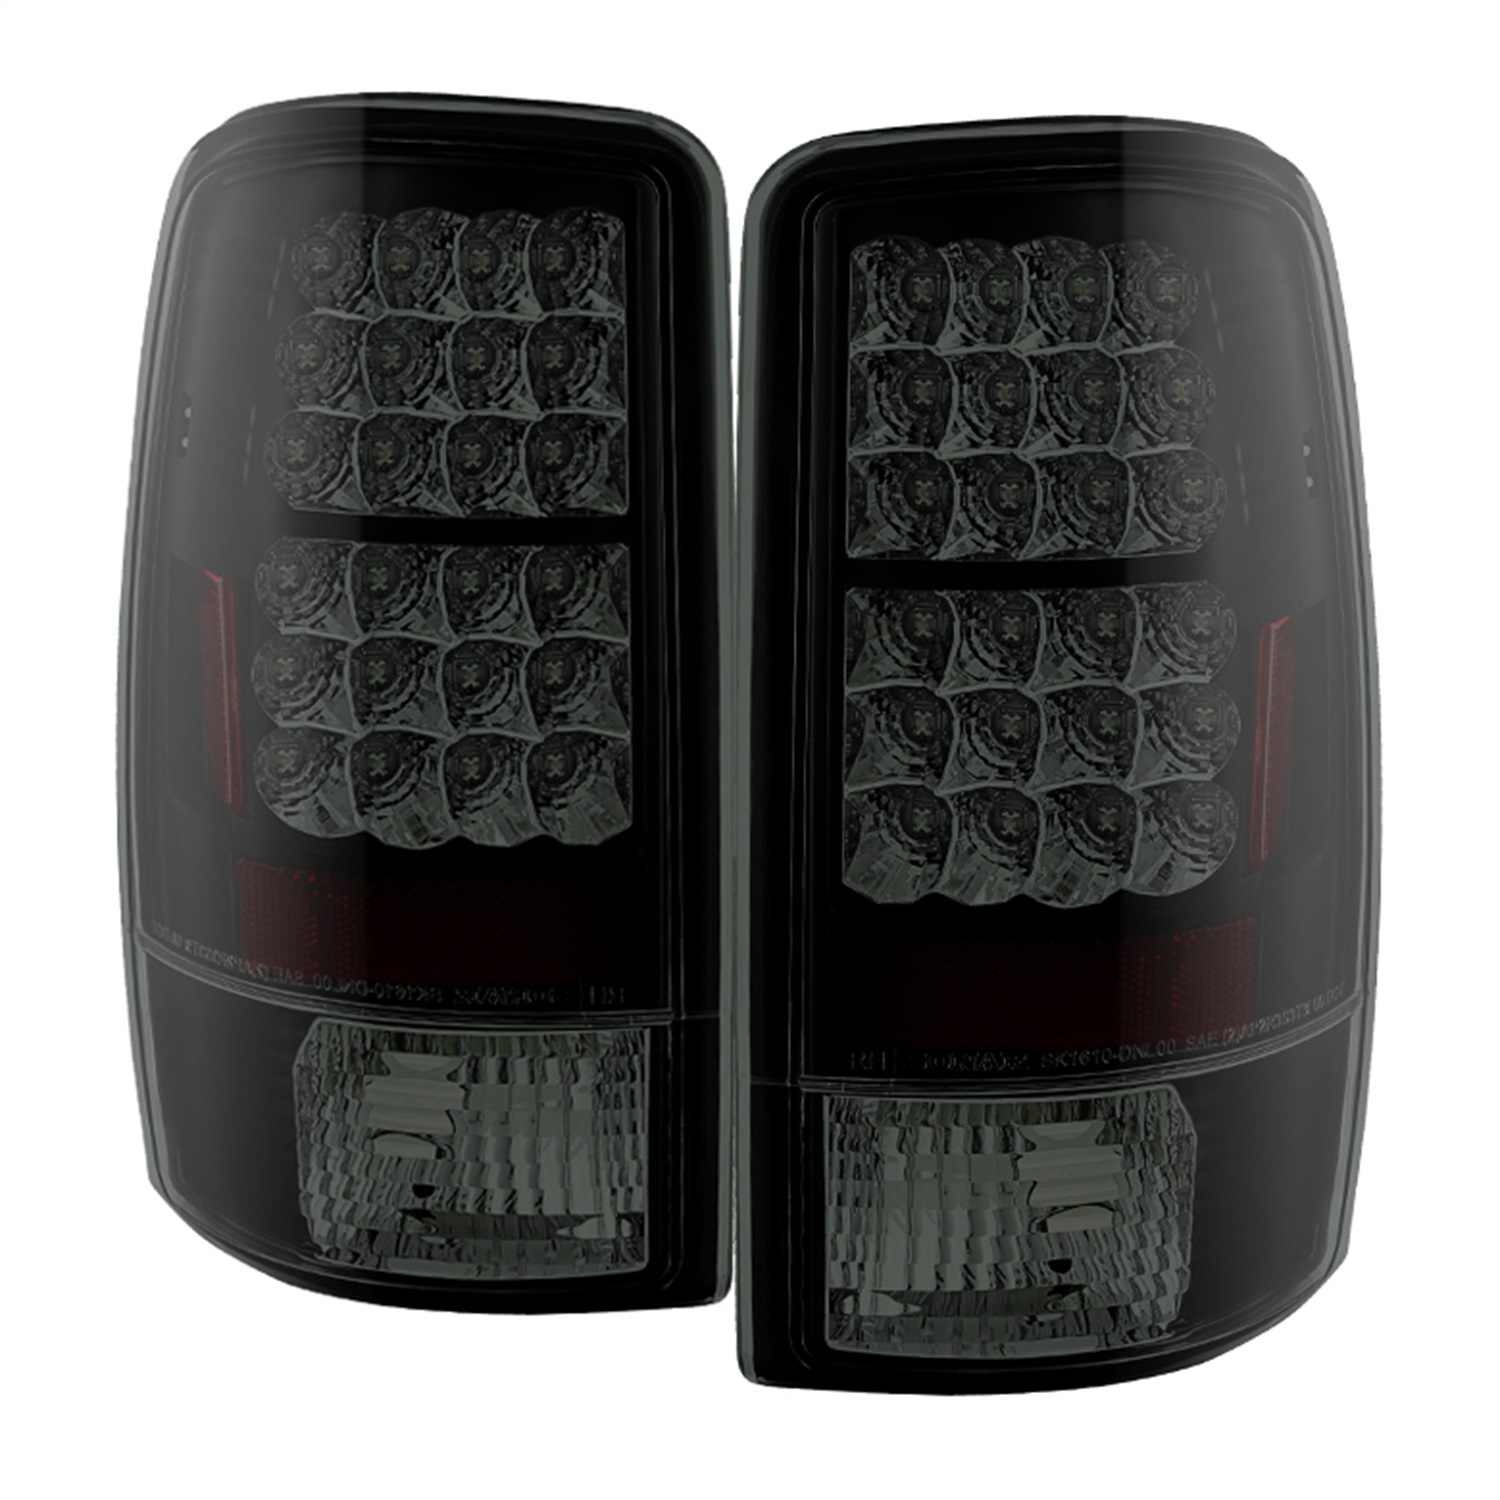 Spyder Auto 5078001 LED Tail Lights Fits Suburban 1500 Tahoe Yukon Yukon XL 1500